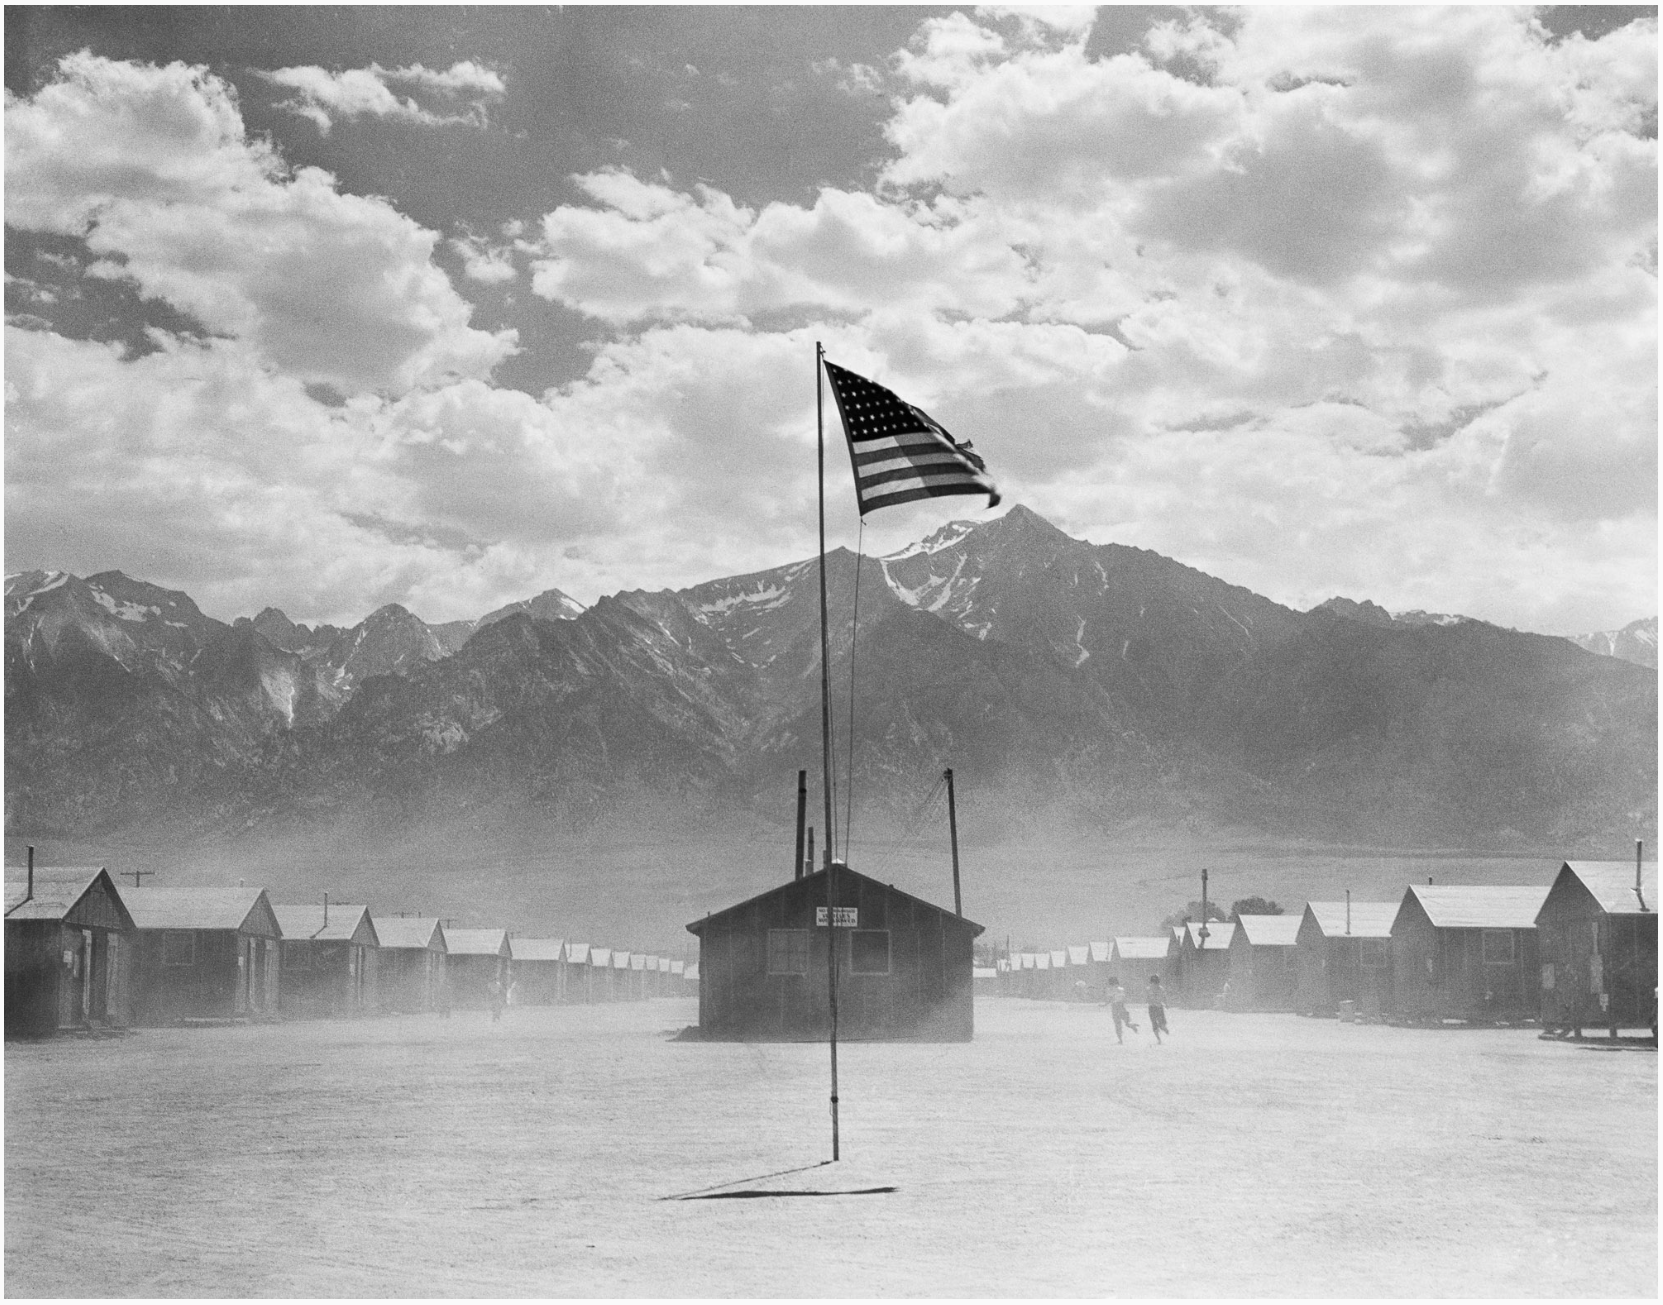 Dorothea Lange; July 3, 1942, Manzanar, California  Original caption: Manzanar, California. Dust storm at this War Relocation Authority center where evacuees of Japanese ancestry are spending the duration.    Copyright: This image is public domain as a work of the United States federal government.